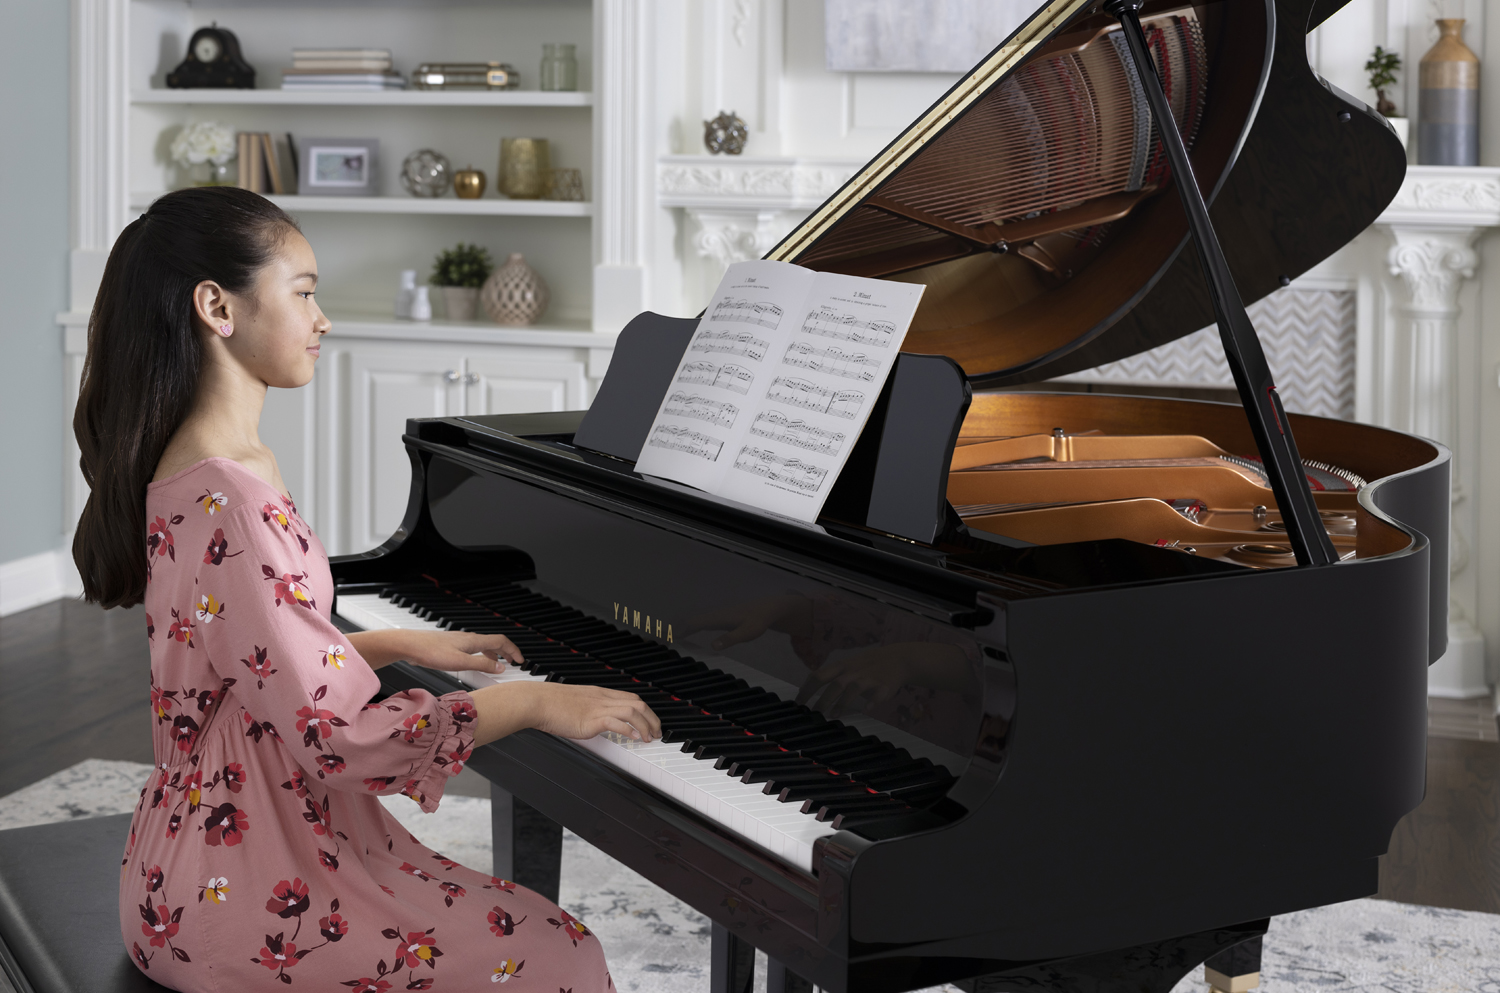 Young woman in casual clothes playing Yamaha baby grand from sheet music with fireplace and bookshelves in background.